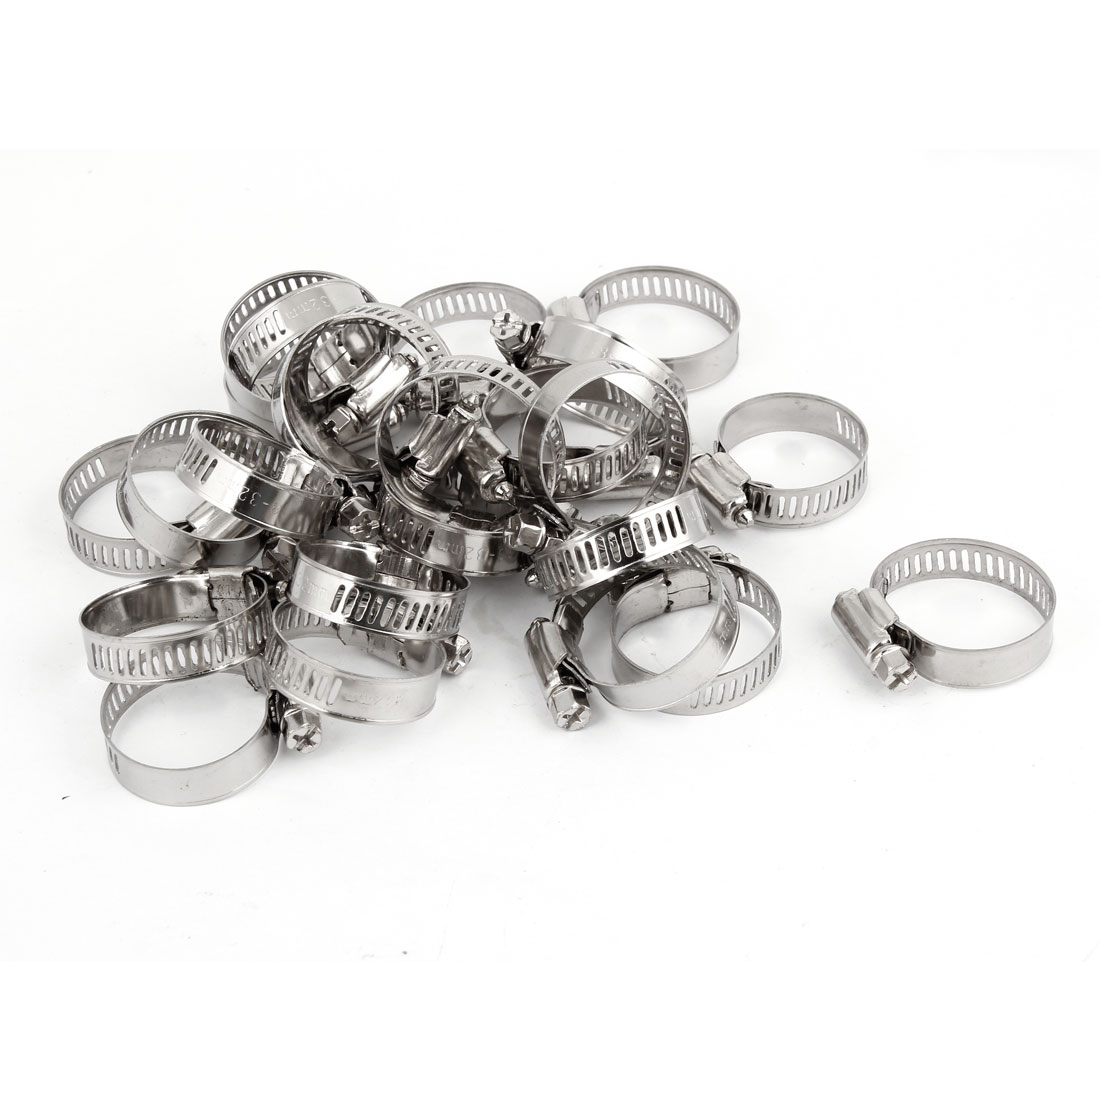 25 Pcs Adjustable 18-32mm Range 10mm Width Hardware Tool Worm Drive Hose Clamp